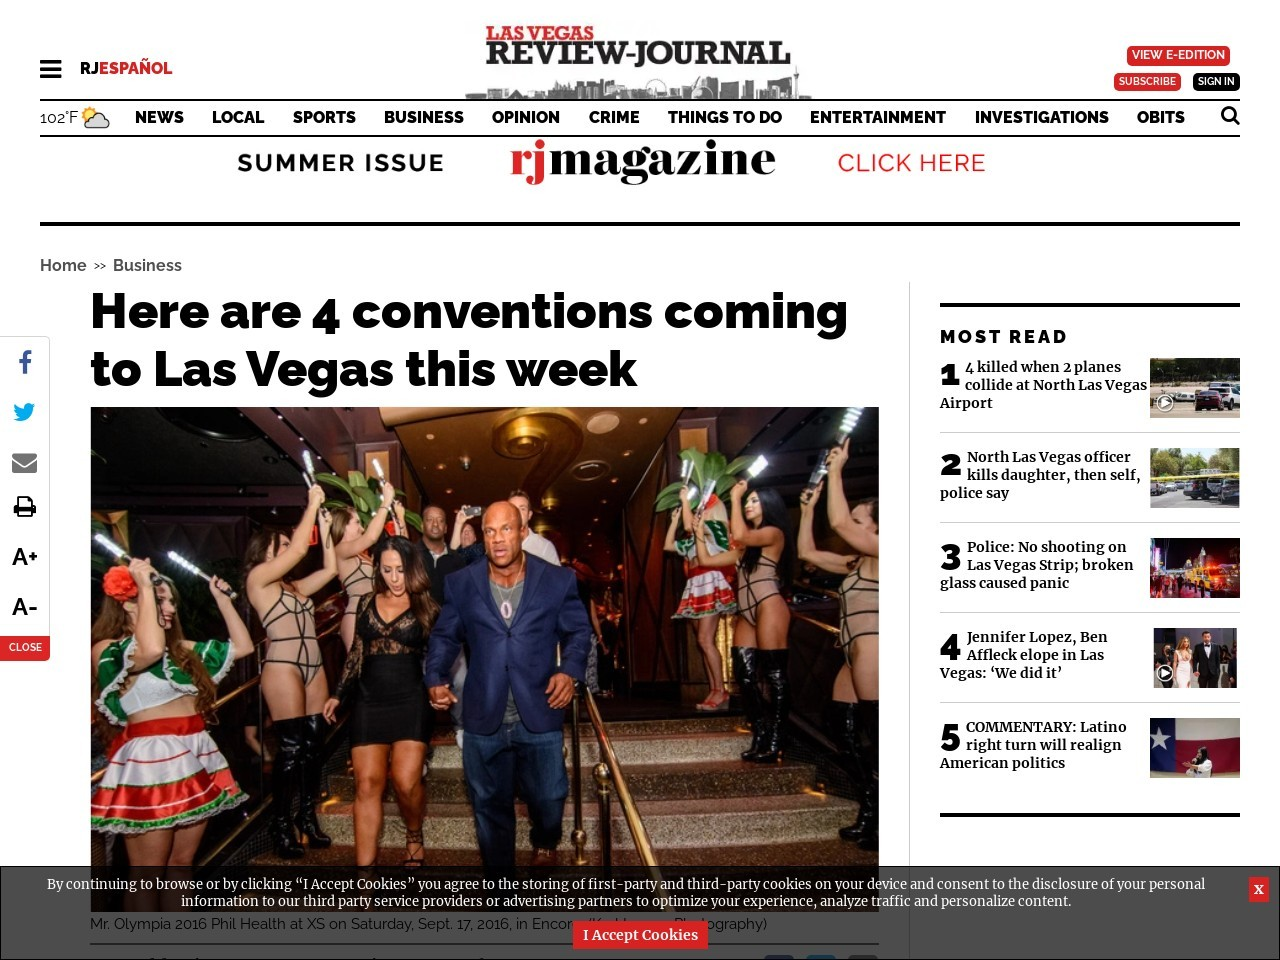 Here are 4 conventions coming to Las Vegas this week